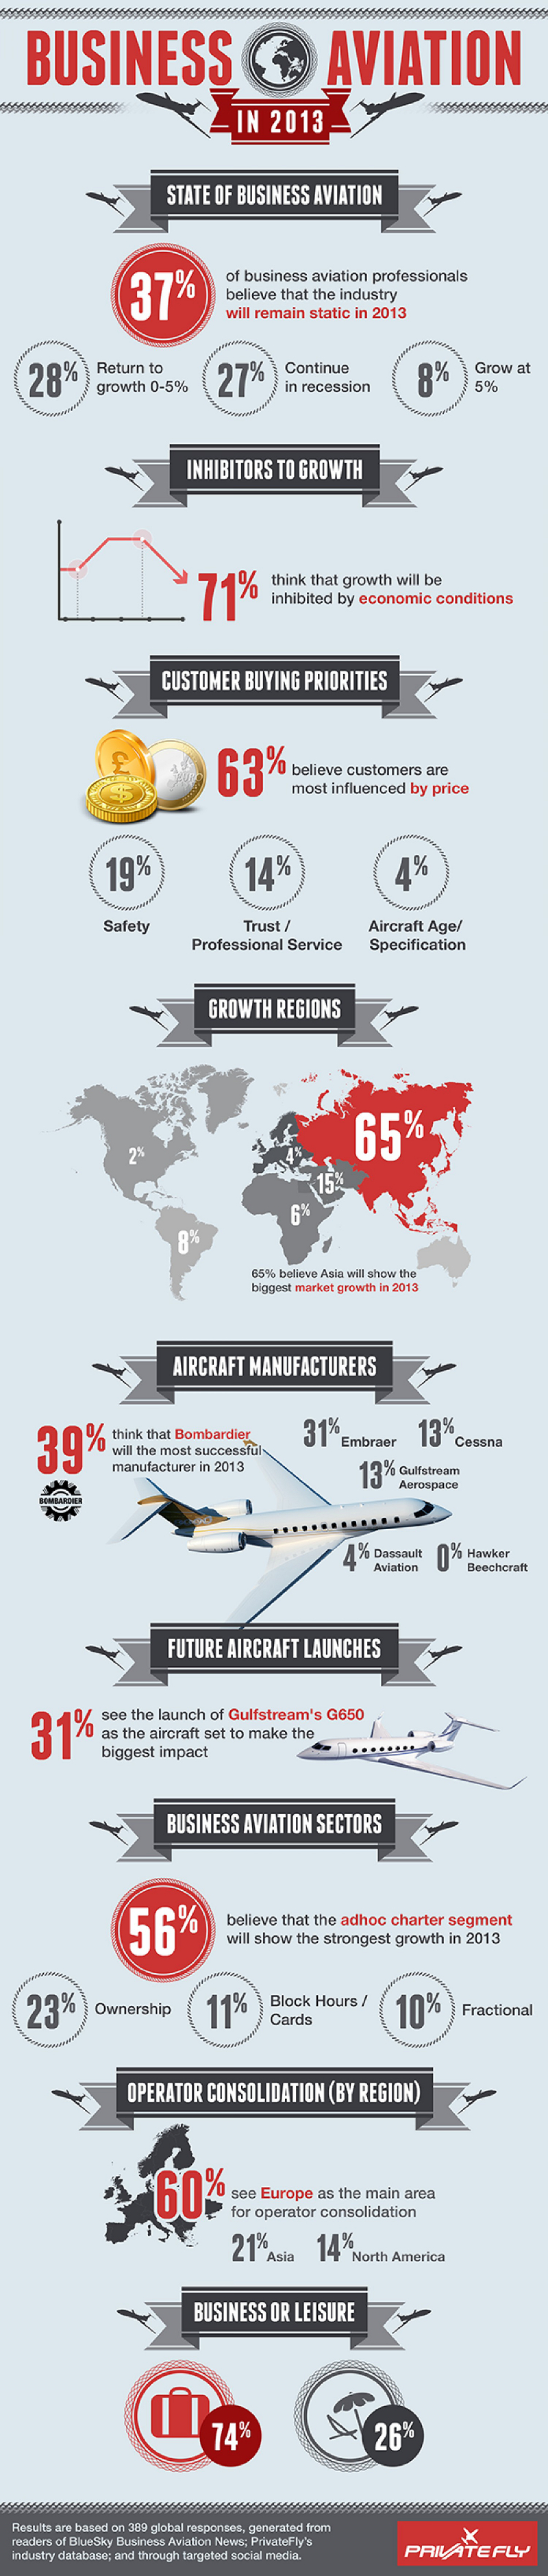 2013 Aviation Statistics